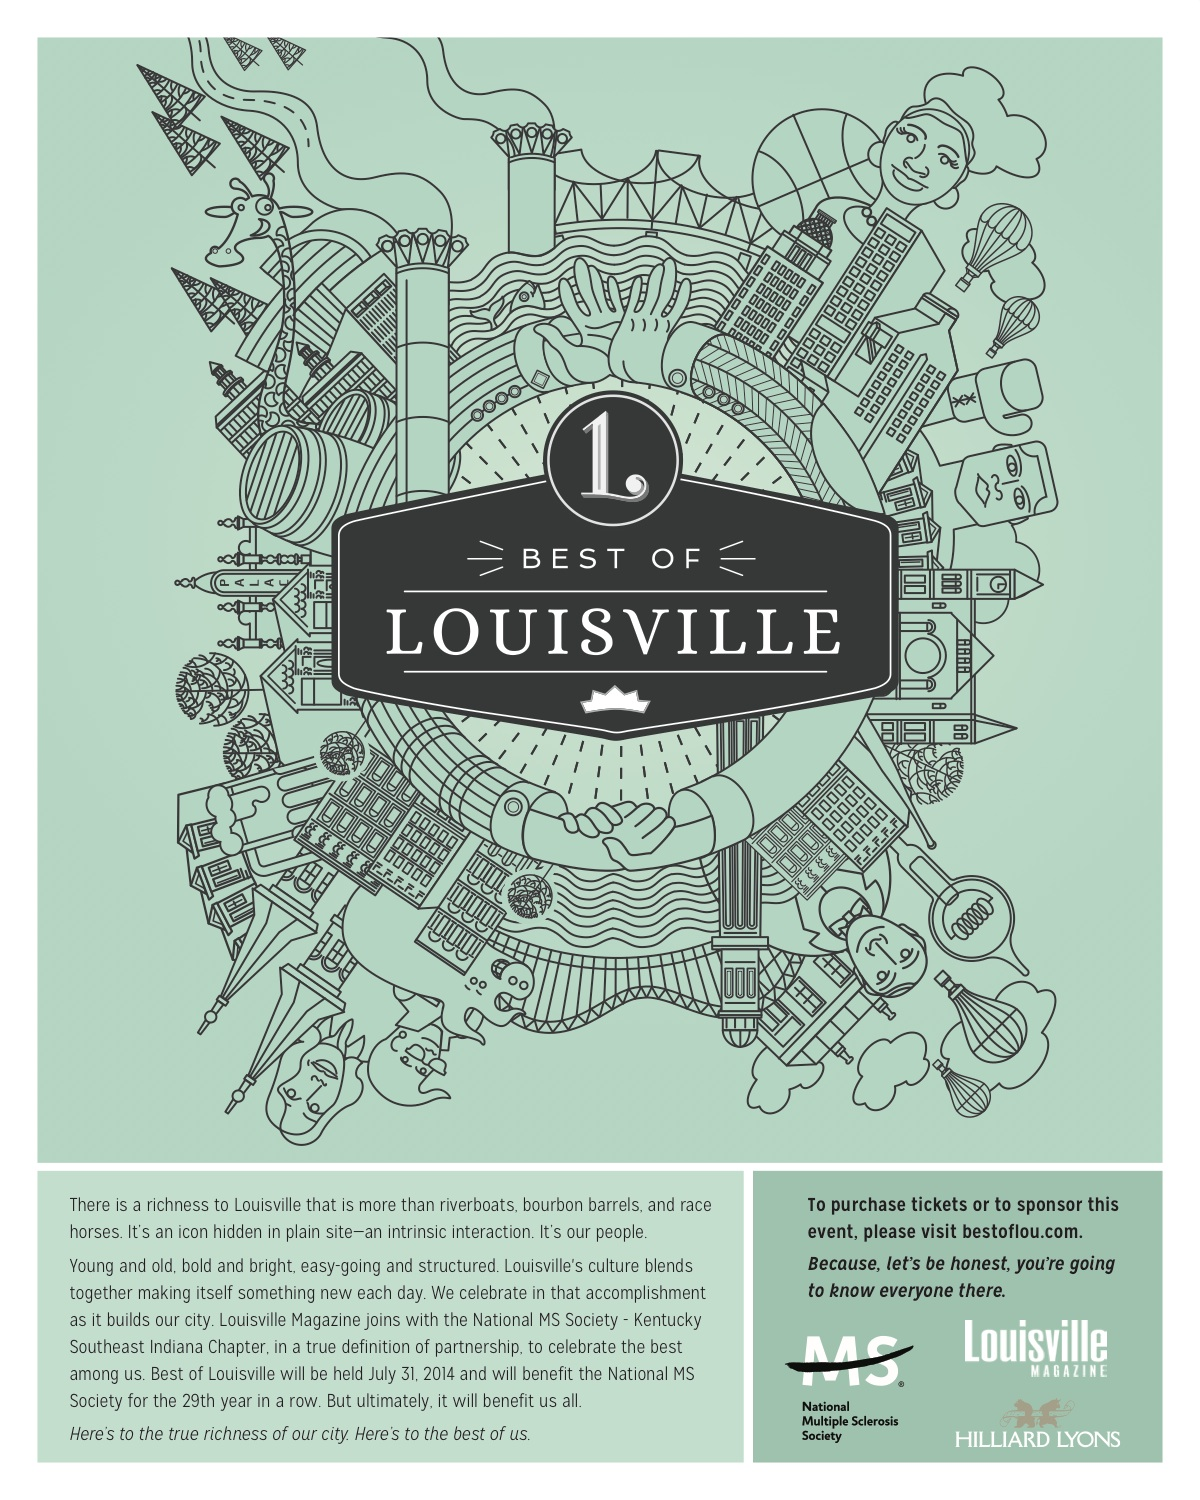 Best of Louisville event at Play Louisville, July 31st